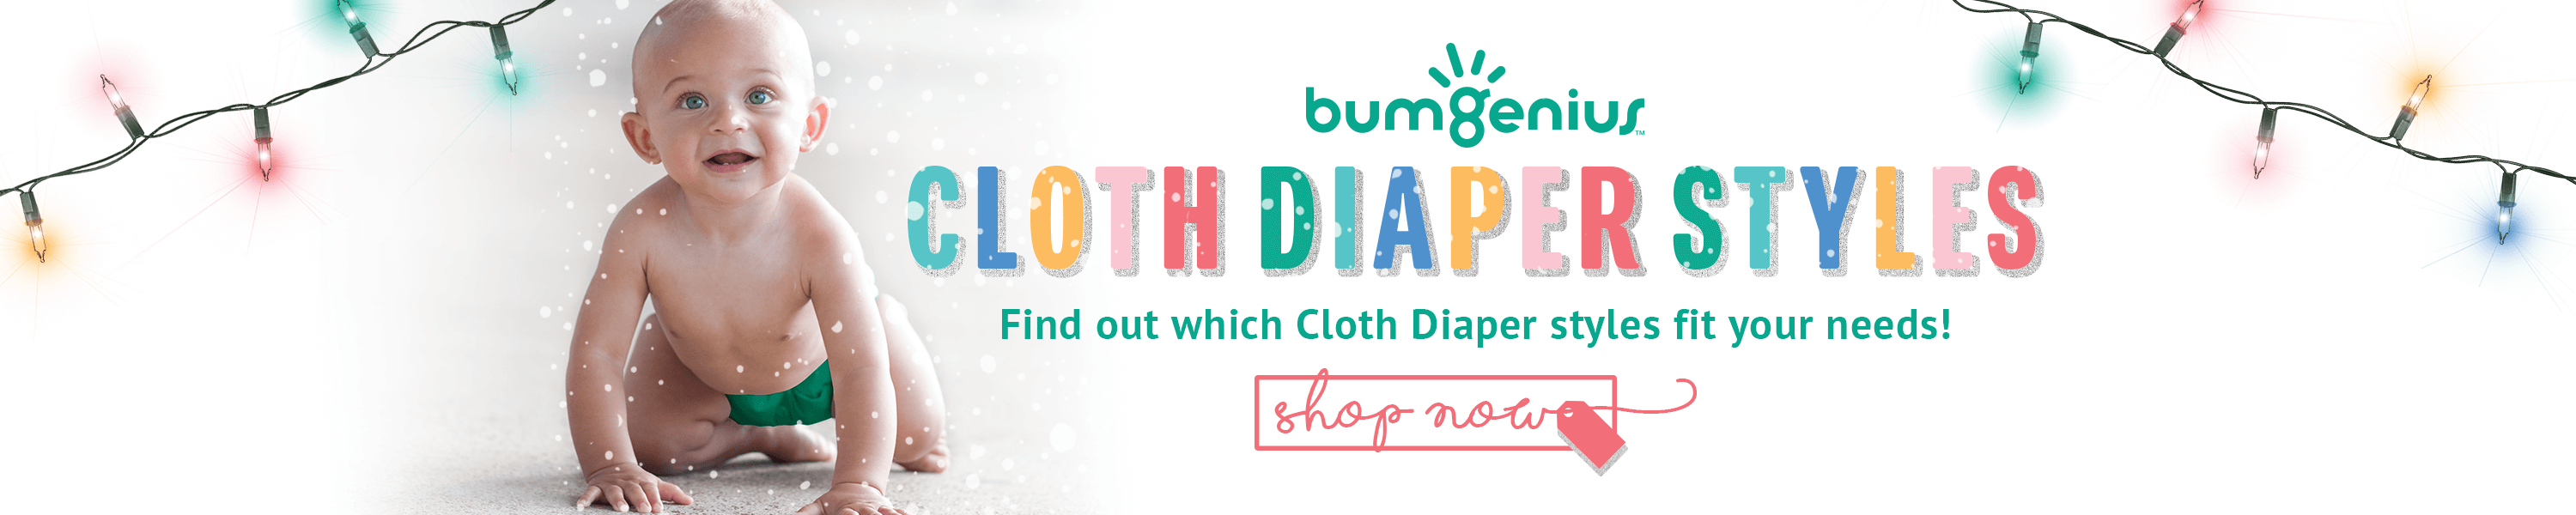 bumGenius has many cloth diaper styles to accommodate your baby's diaper needs